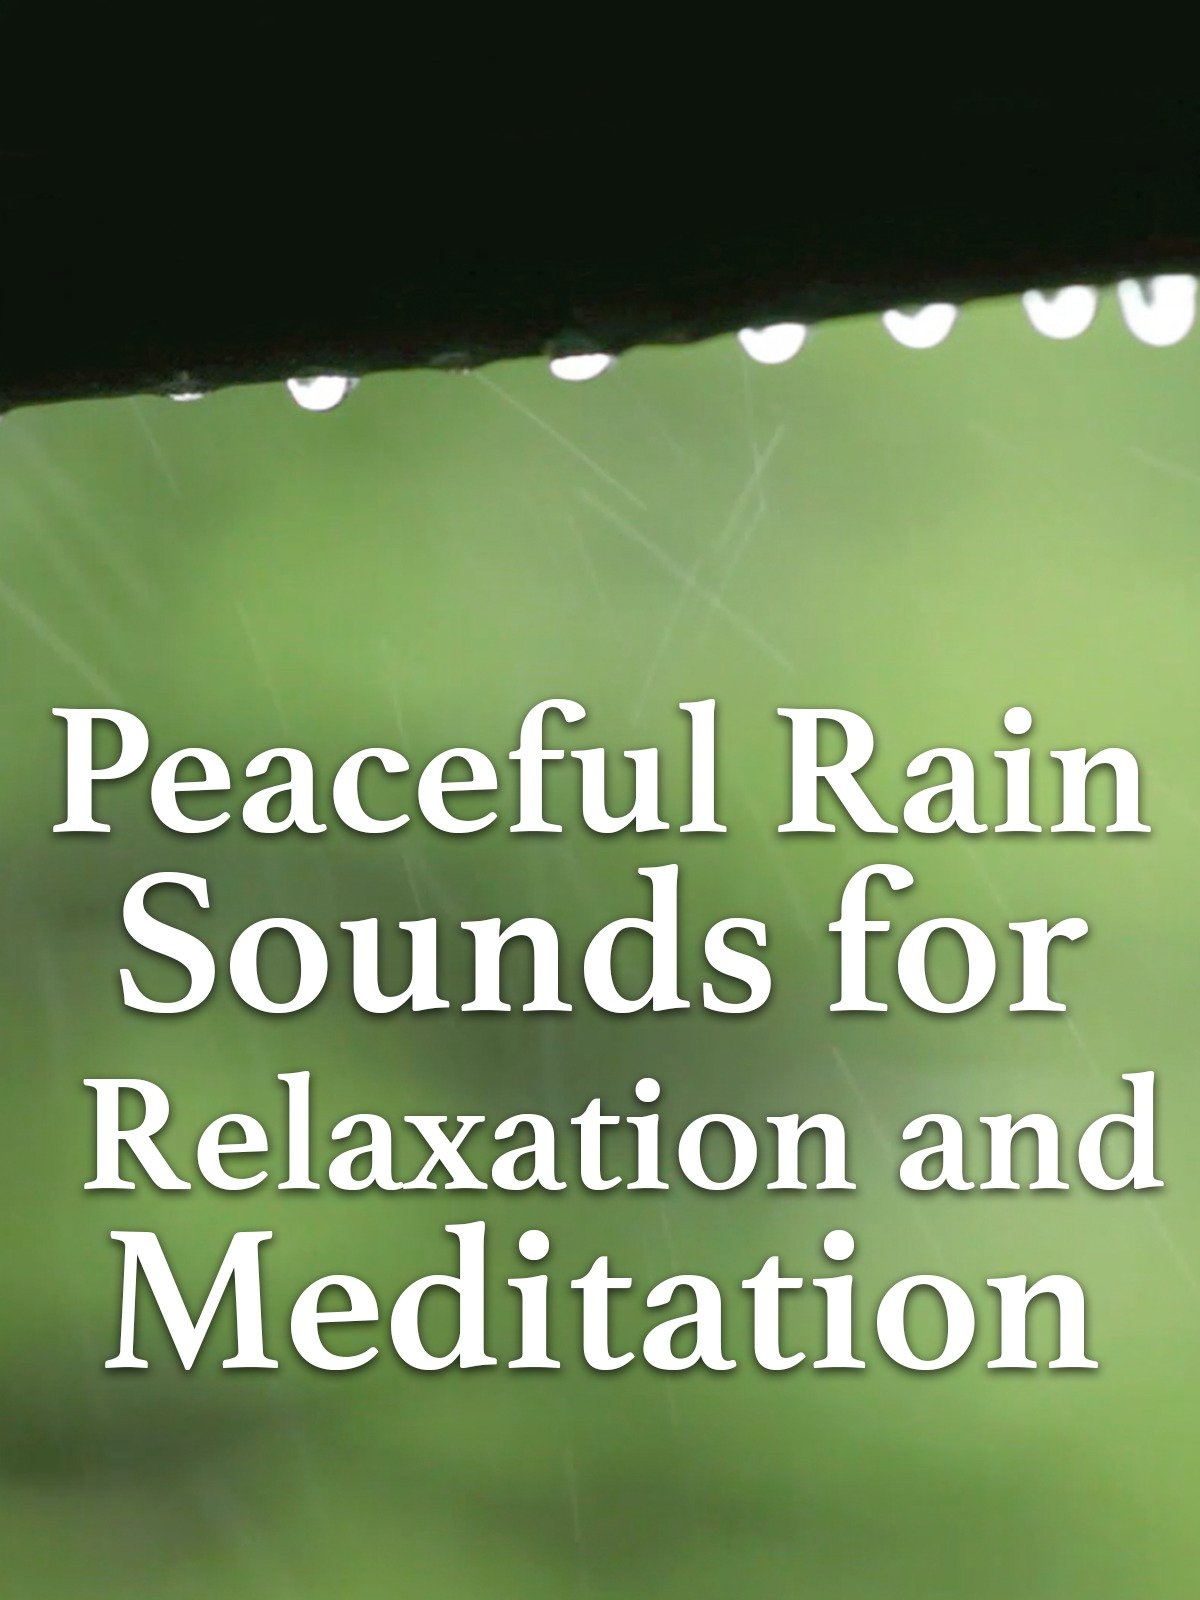 Peaceful Rain Sounds for Relaxation and Meditation